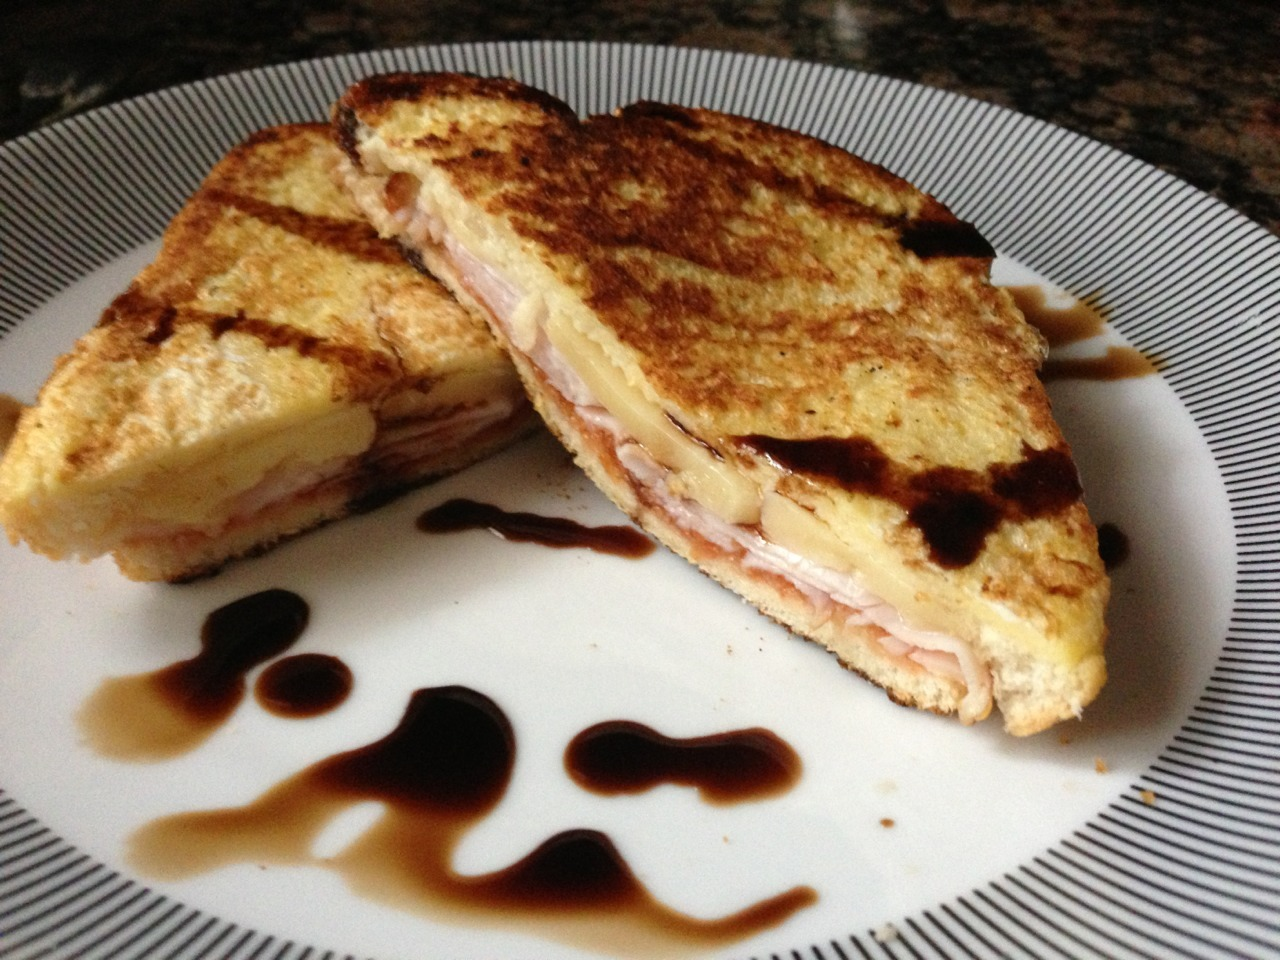 My bastardized Monte Cristo with gruyere, tomato jam, smoke turkey topped with maple balsamic vinegar. -Gastrodamus